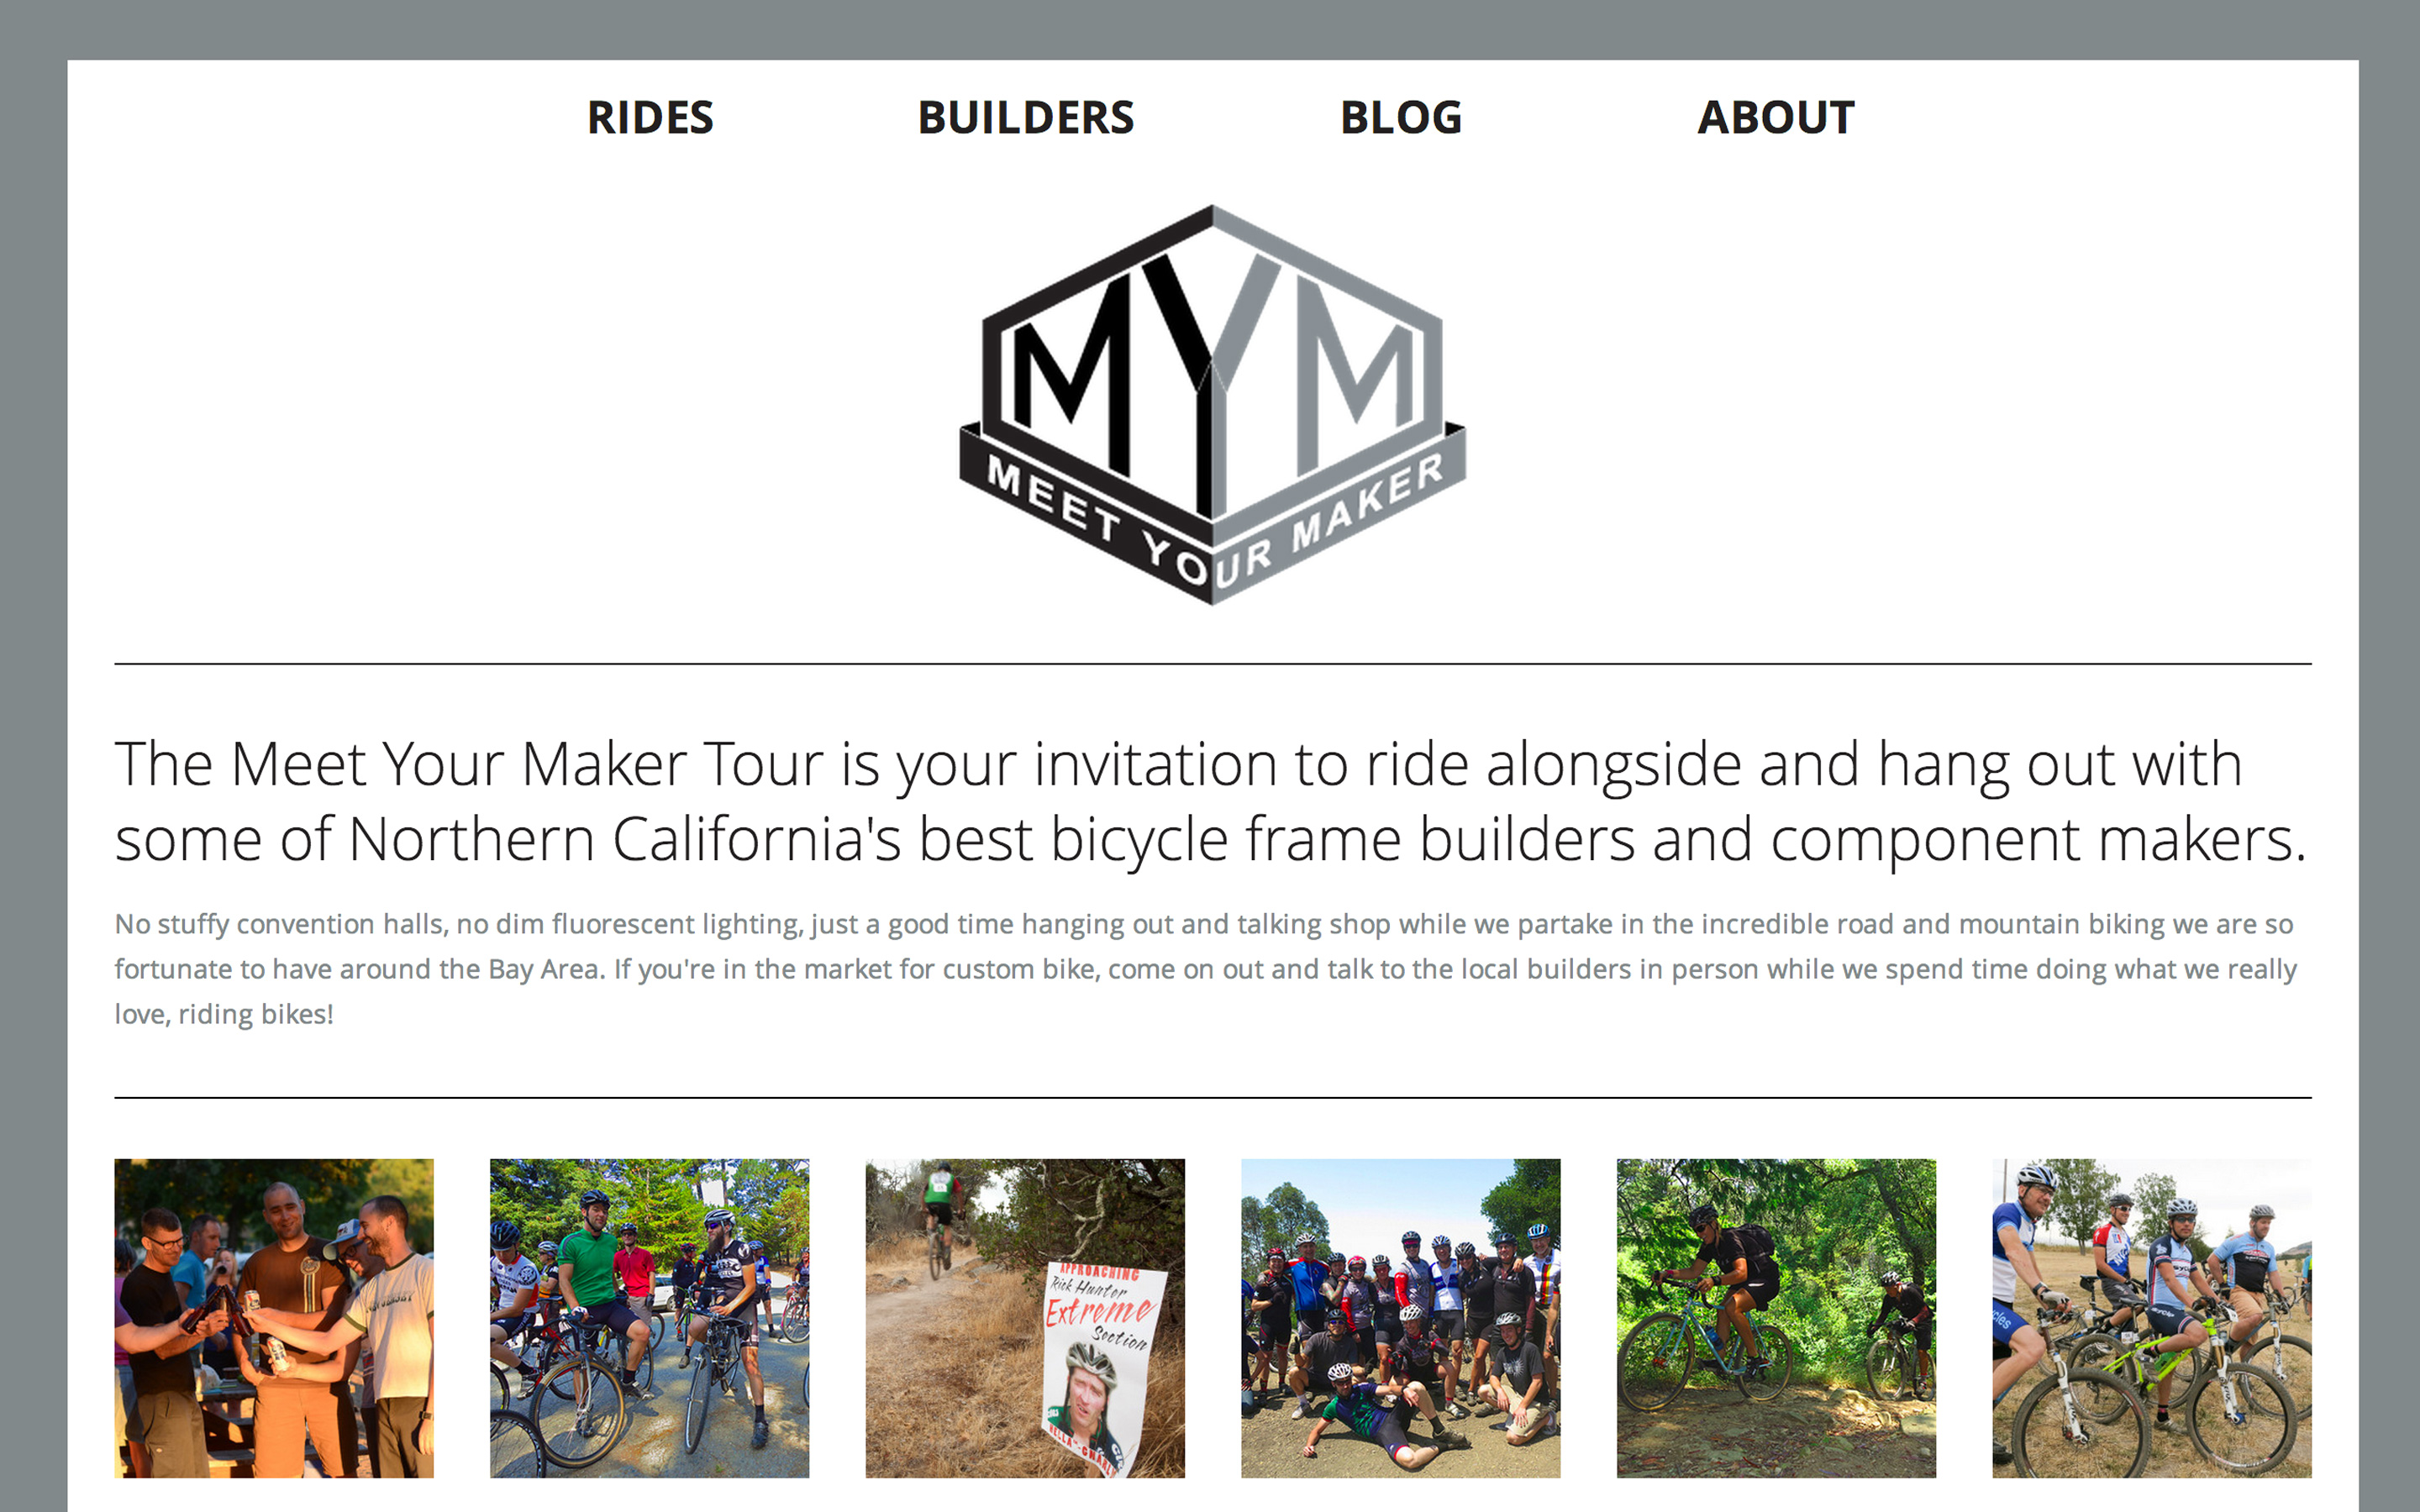 Meet Your Maker Tour - Desktop View